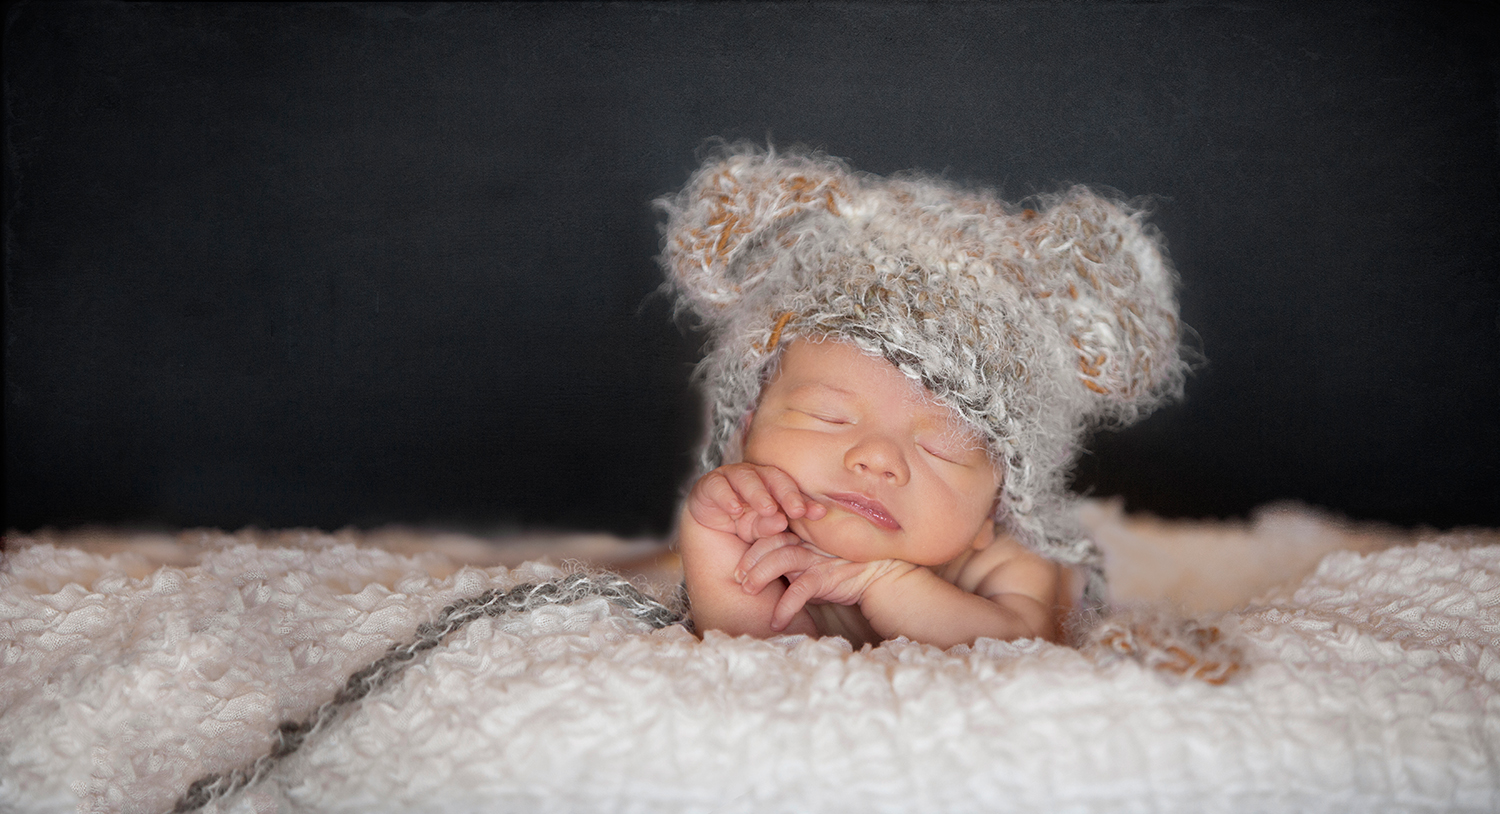 Dena_Rooney_newborn_photographer_0052.jpg